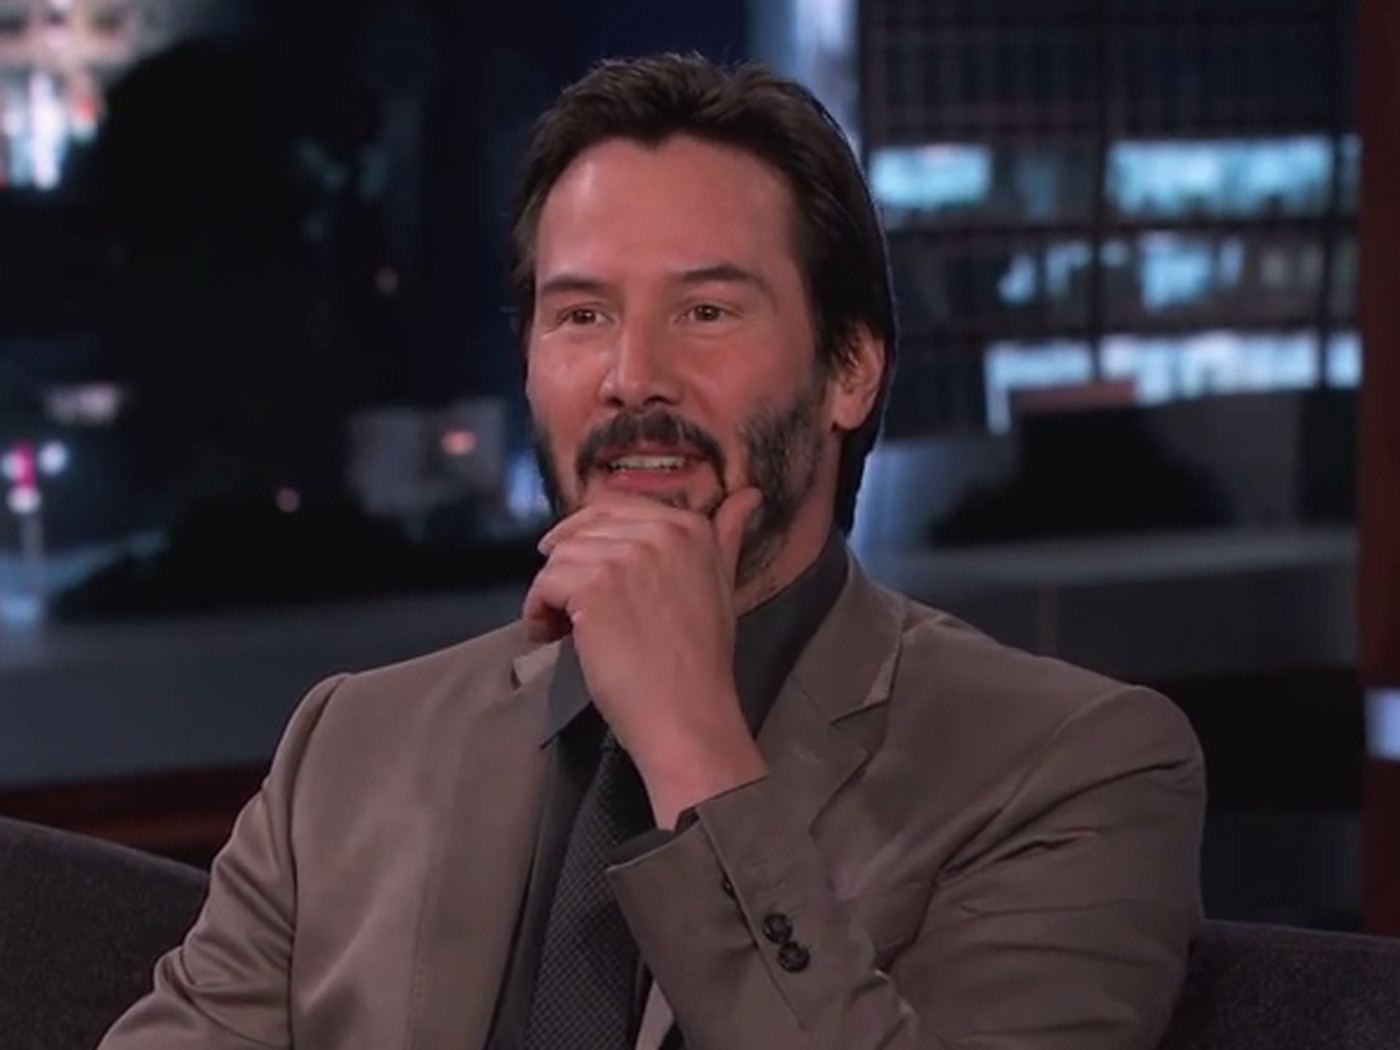 Facts and Things that you don't know about Keanu Reeves